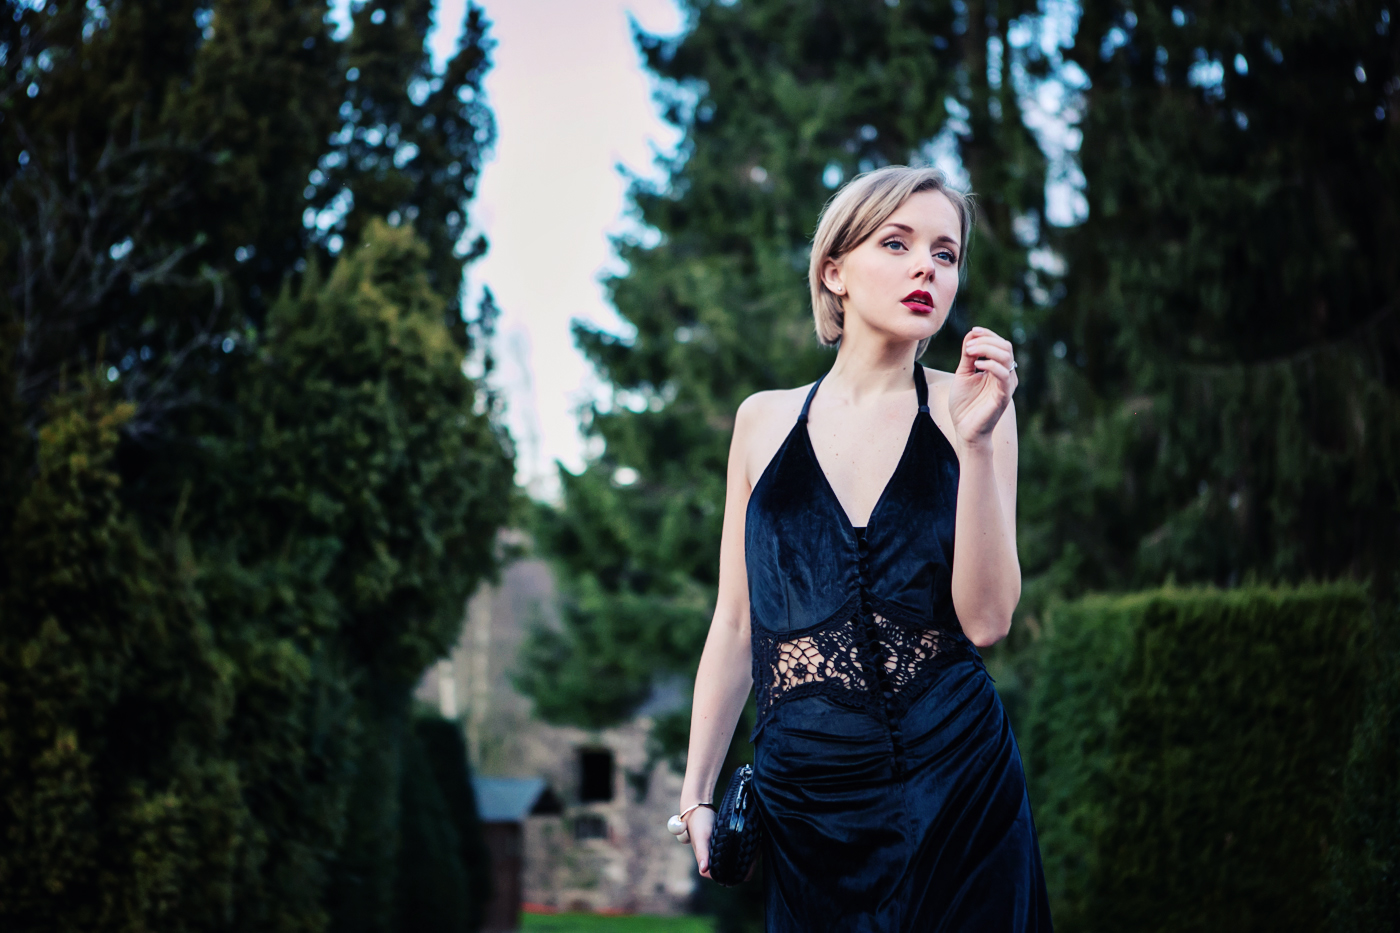 darya kamalova from thecablook com on the wedding in belgium wearing a maxi black dress from jarlo and bottega veneta knot black klutch with zara pearls bracelet_-31 copy